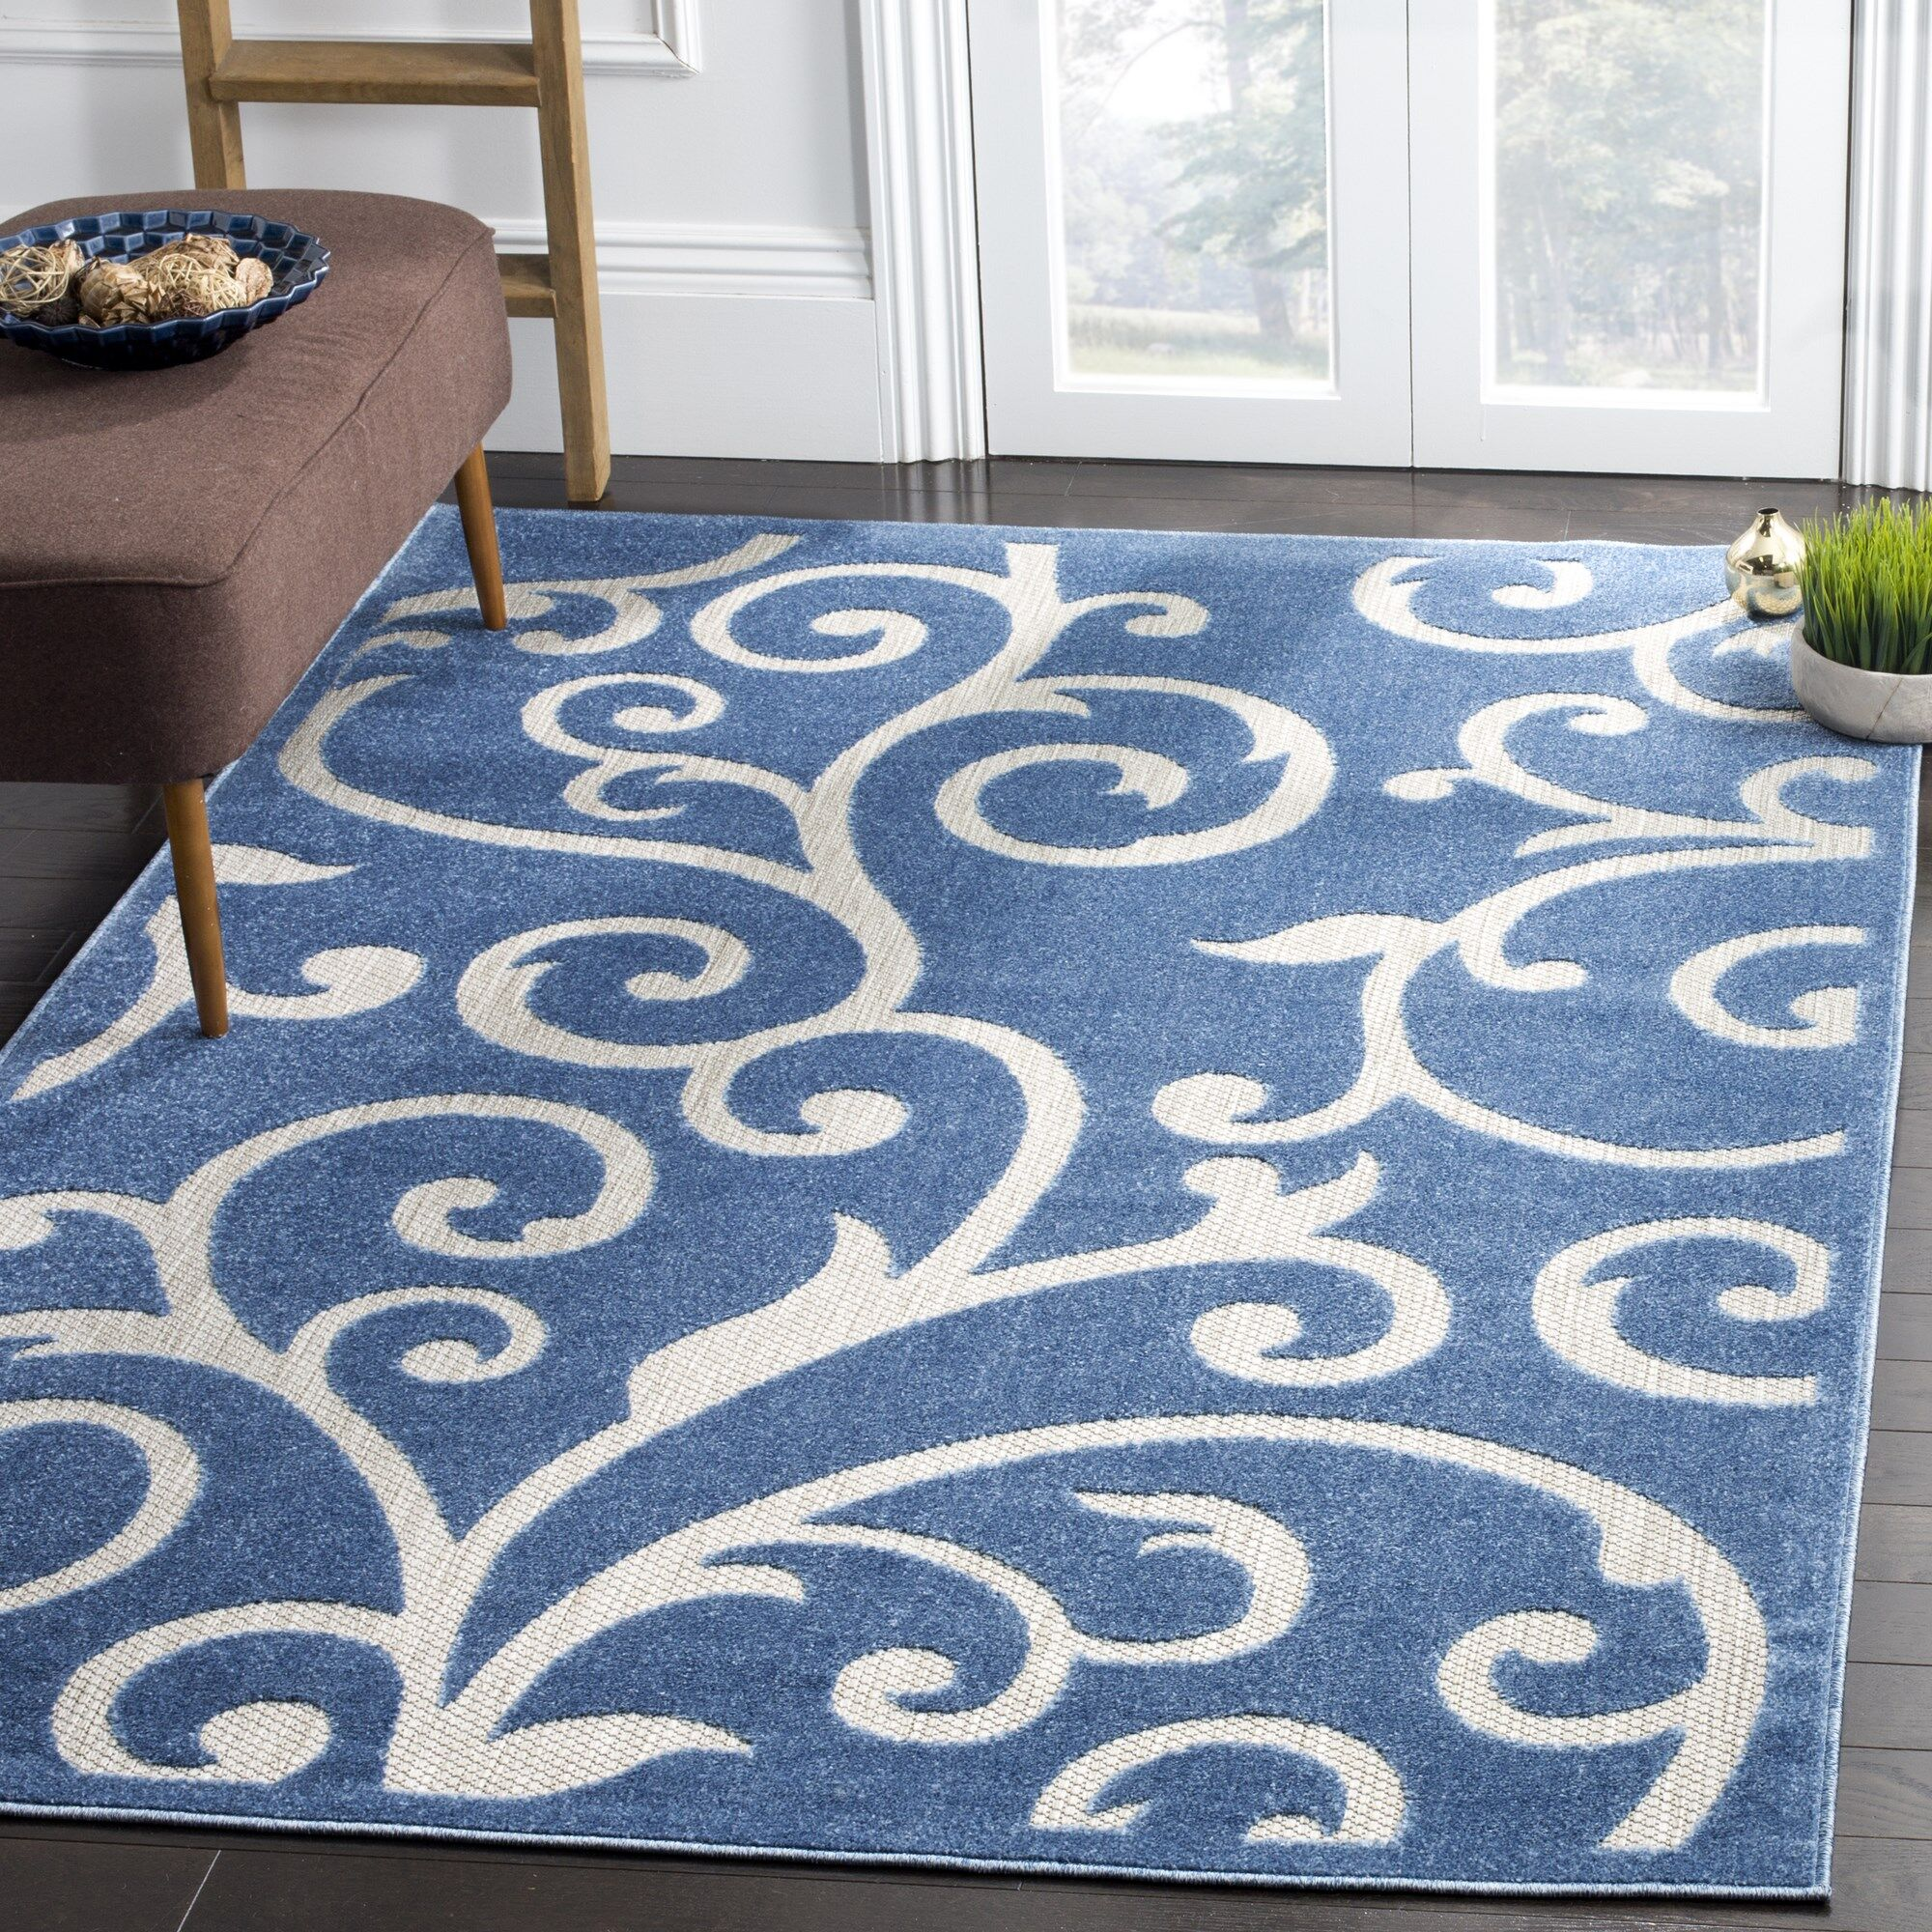 Bryan Blue/Cream Indoor/Outdoor Area Rug Rug Size: 8' x 11'2